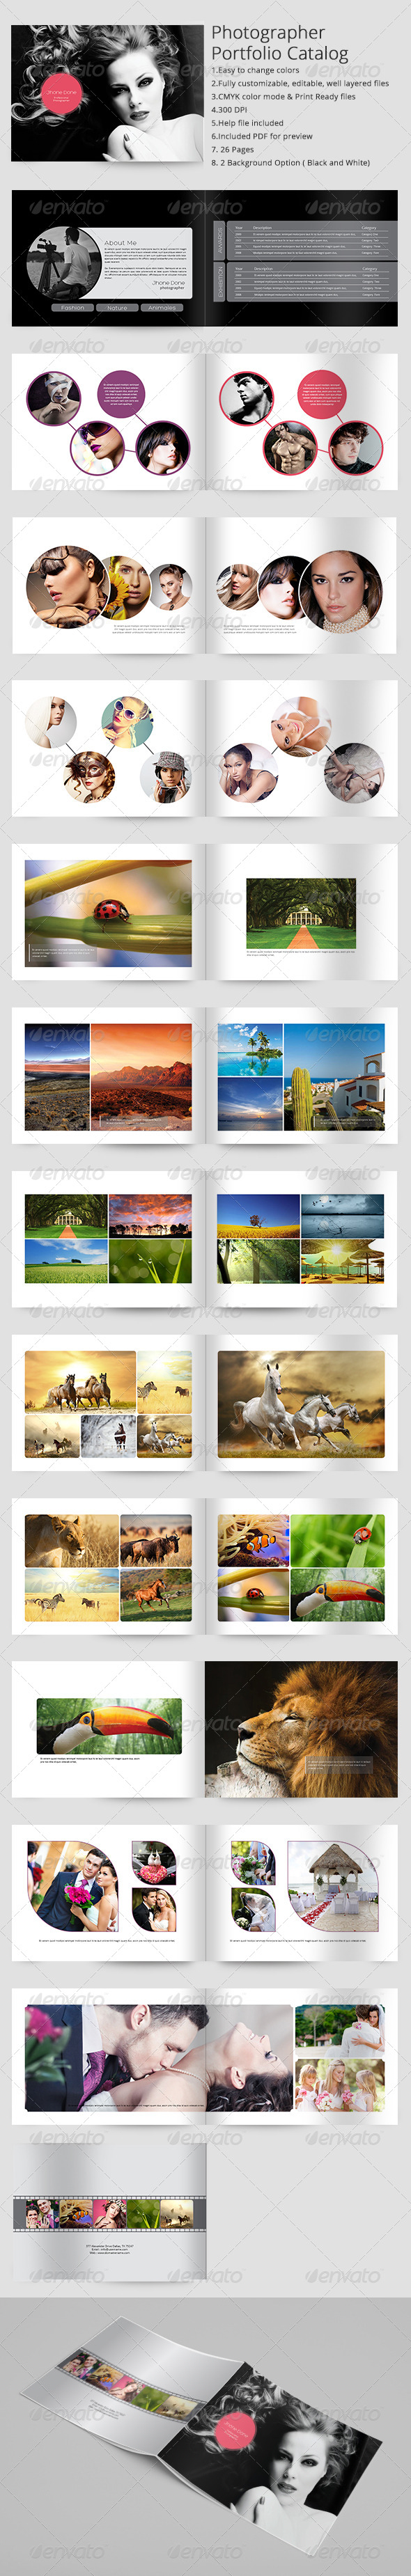 Photographer Portfolio Catalog Indesign Template - Portfolio Brochures